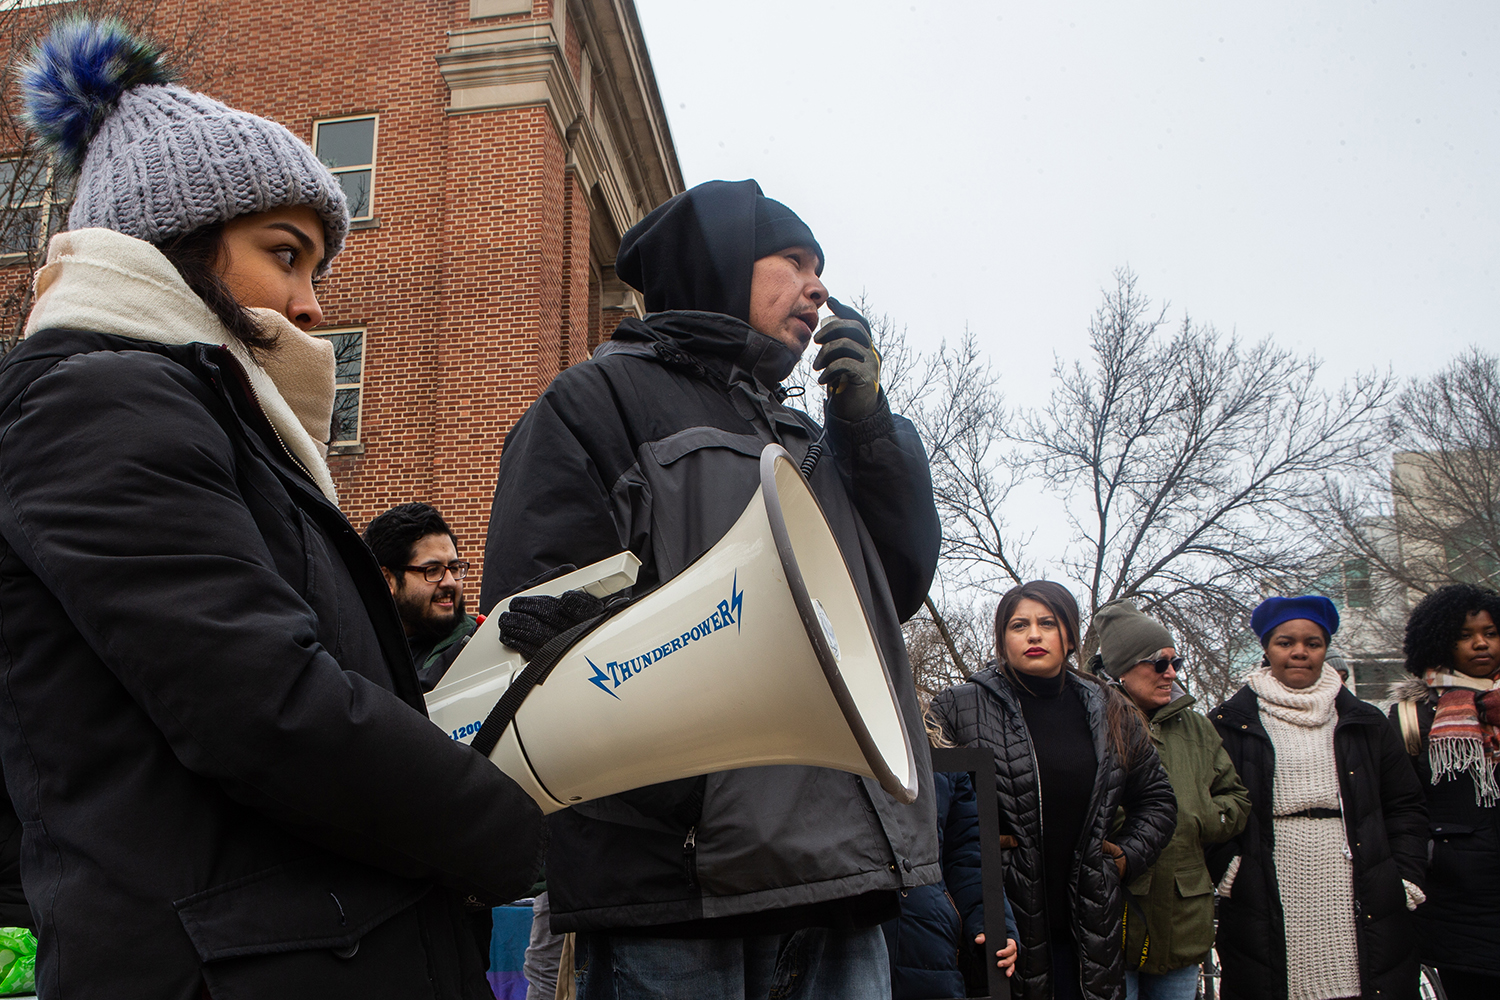 UI Student Dawson Davenport speaks during a rally for the #DoesUIowaLoveMe movement  in the T. Anne Cleary Walkway on Thursday, February 28, 2019. Students, university faculty, and community members gathered to tell their stories about belonging to marginalized cultural groups. Does UIowa Love Me is a collective of students that aims to give underrepresented students an outlet to share their experiences as people of color at a predominantly white institution.